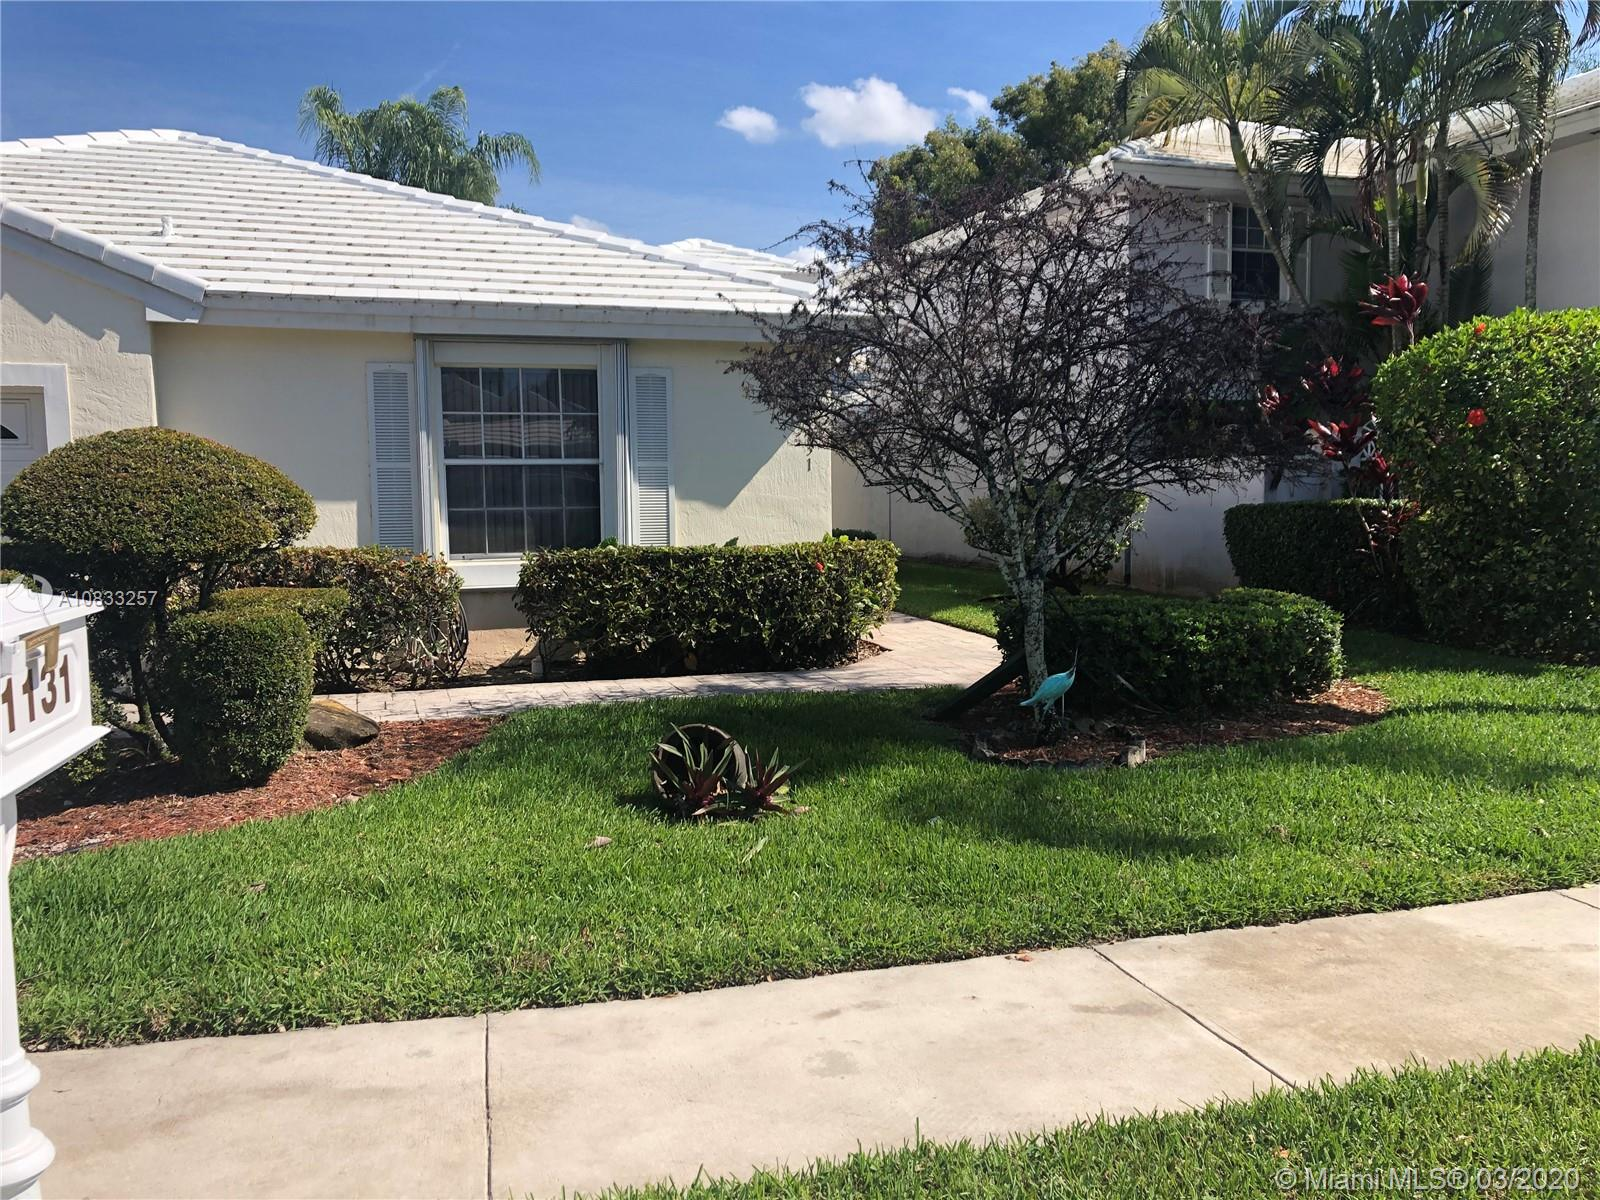 FABULOUS 3/2 ONE STORY  IN EXCELLENT COMMUNITY OF GRAN PALMS  UPGRADED KITCHEN WITH GORGEOUS SILE STONE COUNTERS, UPGRADED LIKE NEW REFRIGERATOR, RANGE & DISHWASHER, ACCORDION SHUTTERS, FABULOUS REMODELED MASTER BATH WITH GORGEOUS TILE, SEAMLESS SHOWER DOOR S, DECORATOR SINK & QUALITY GROHE FIXTURES, REMODELED SECOND BATH, FABULOUS BUILT-INS THROUGHOUT, 3RD BEDROOM DESIGNED AS A DEN/OFFICE,SKYLIGHT & SO MUCH MORE!